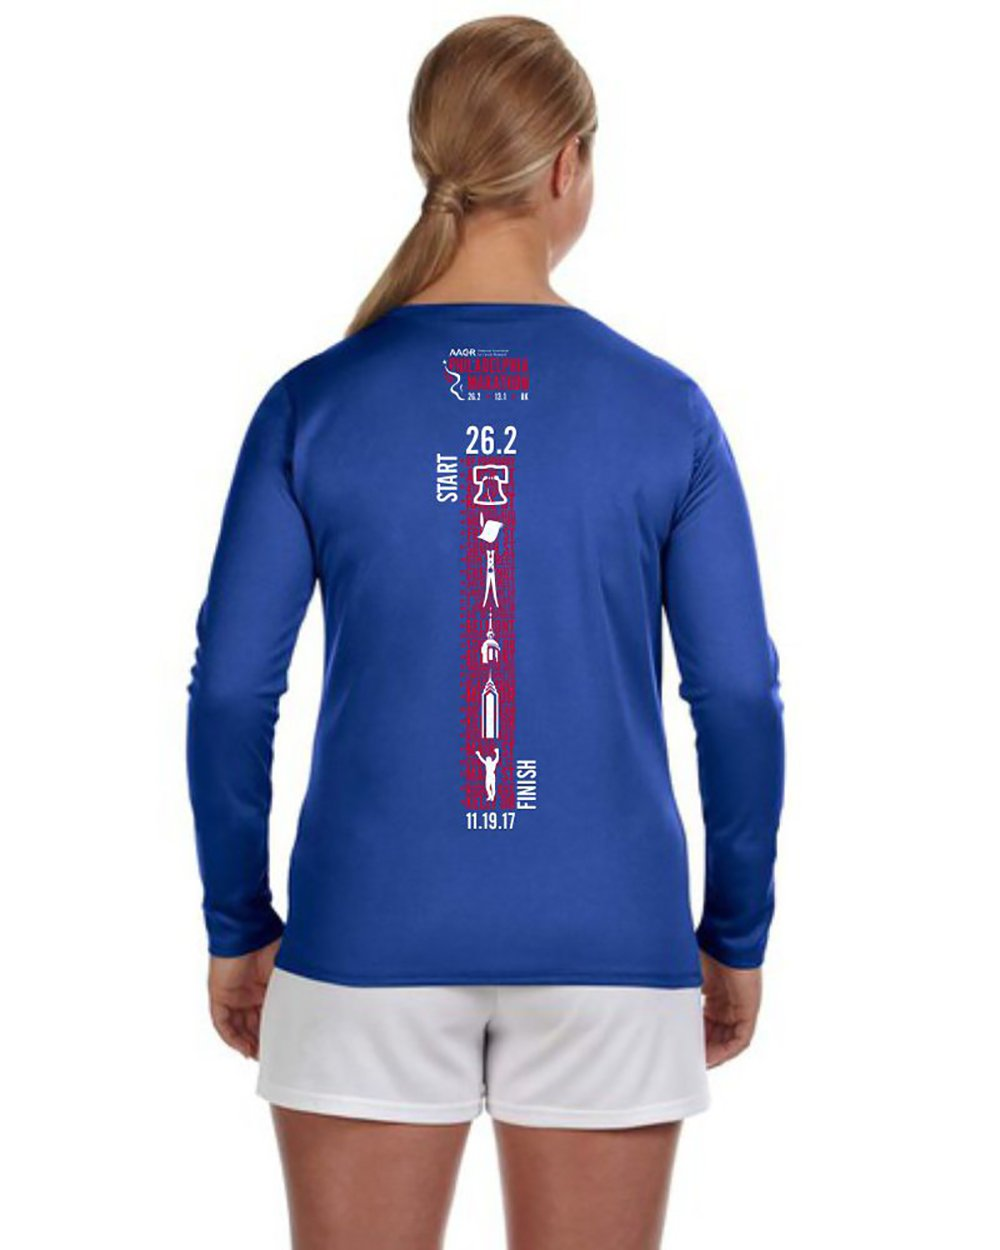 AACR Philadelphia Marathon: '2017 Directions 26.2' Women's LS Tech V-Neck Tee - Royal - by New Balance